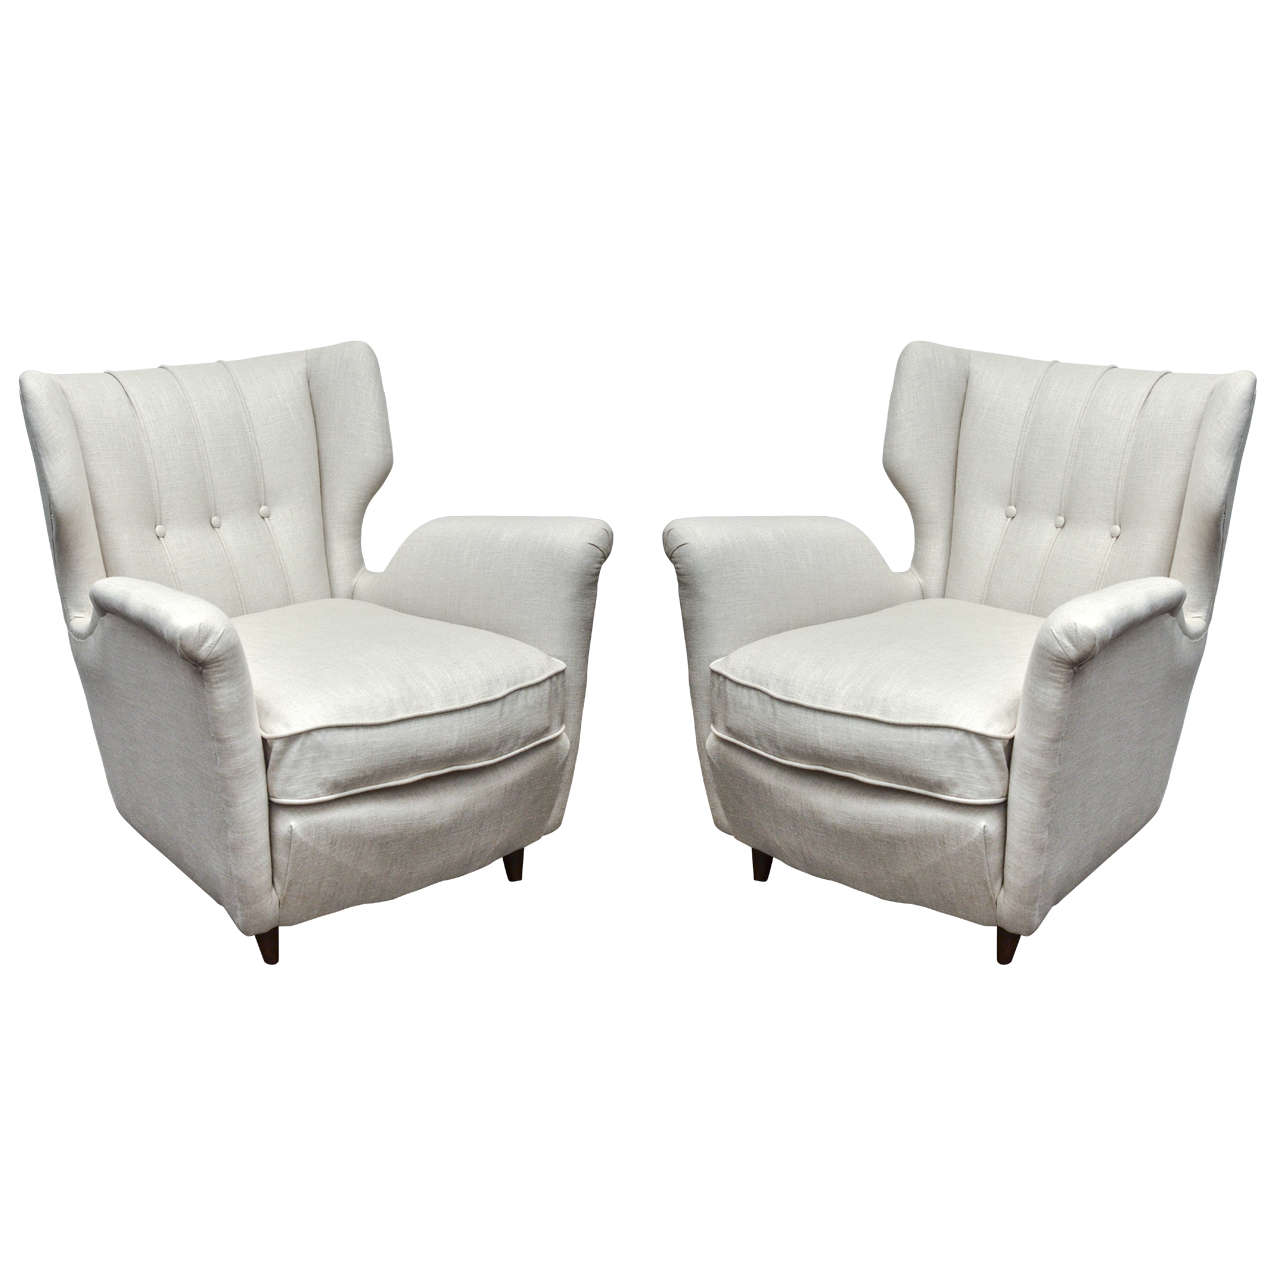 1950s Upholstered Club Chairs in Gio Ponti Style